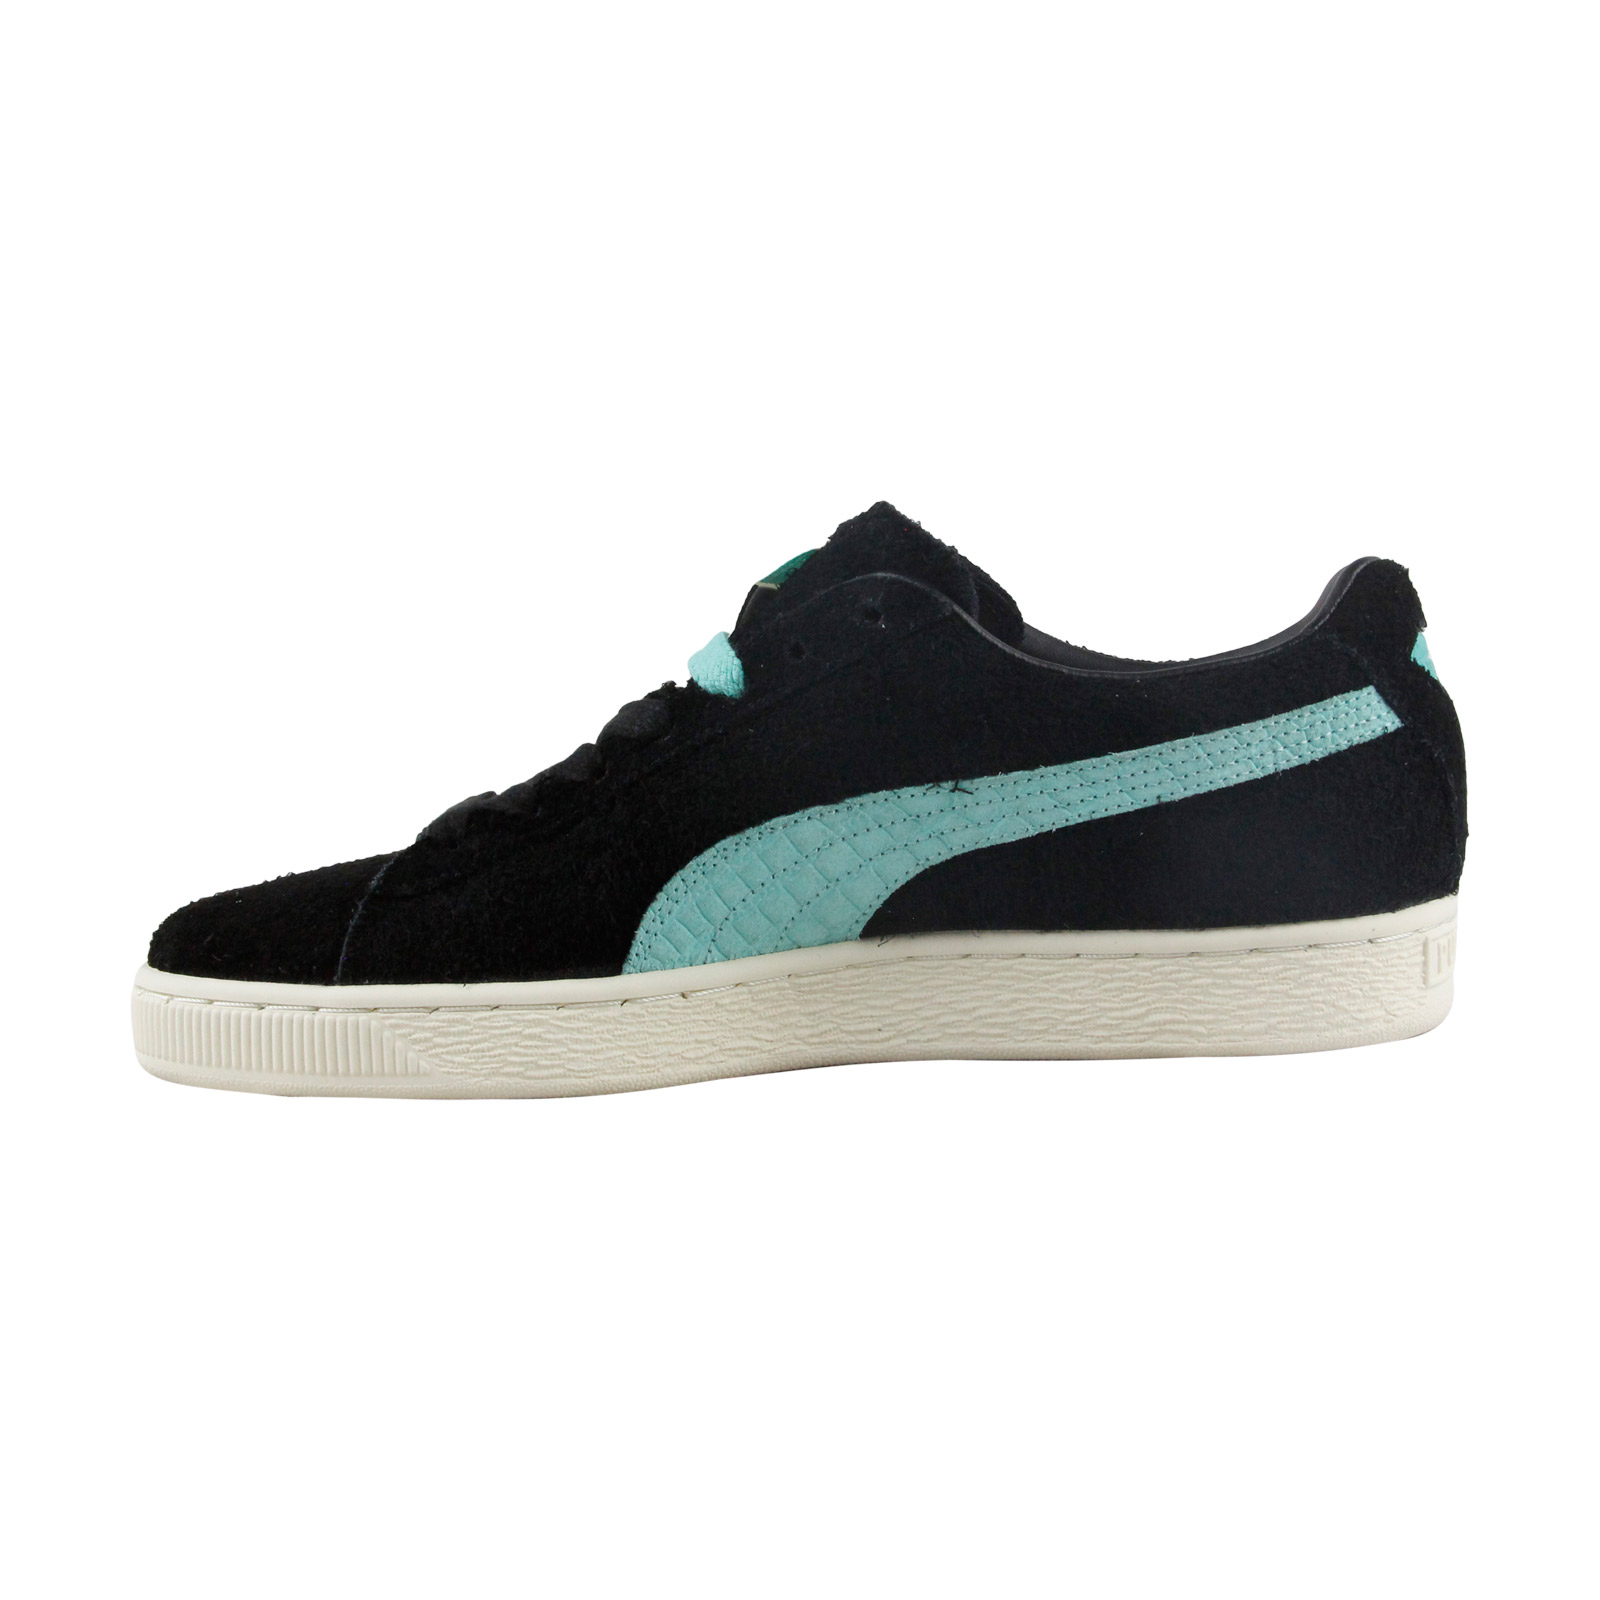 1 of 3FREE Shipping Puma X Diamond Suede Mens Black Suede Lace Up Sneakers  Shoes d660e6e9e